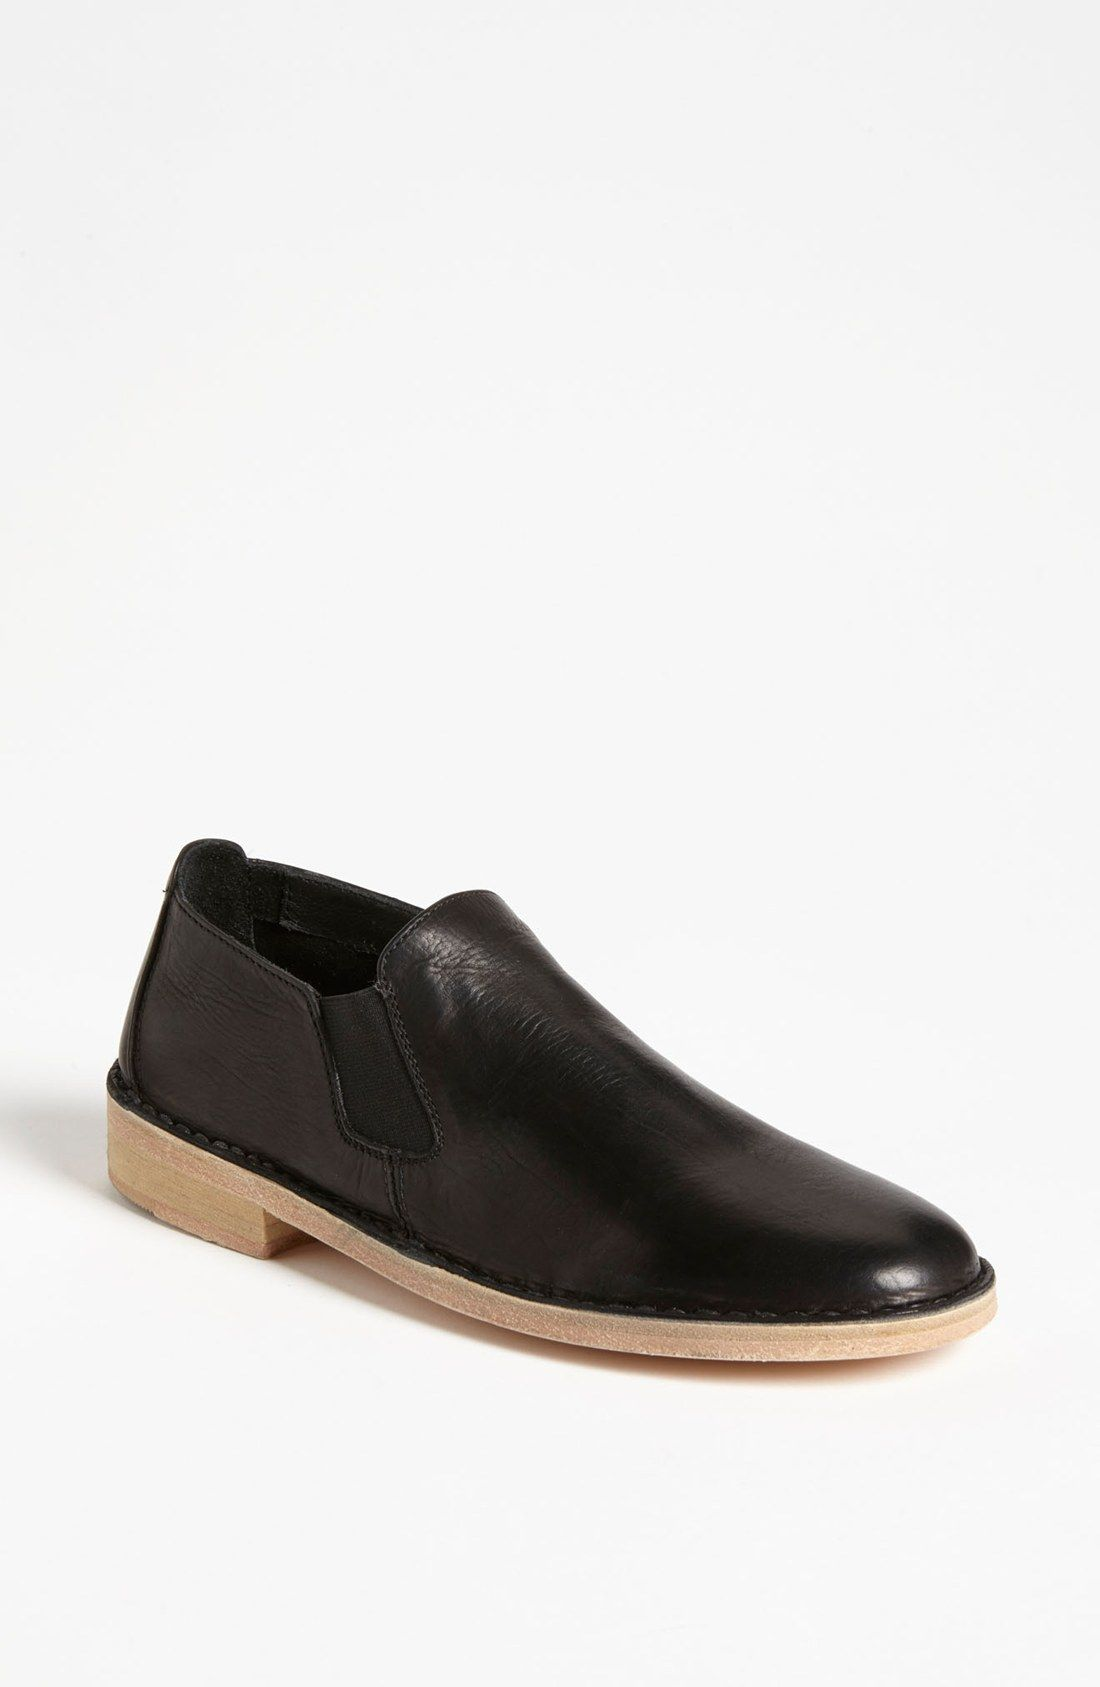 Vince 'Mia' Loafer For Women